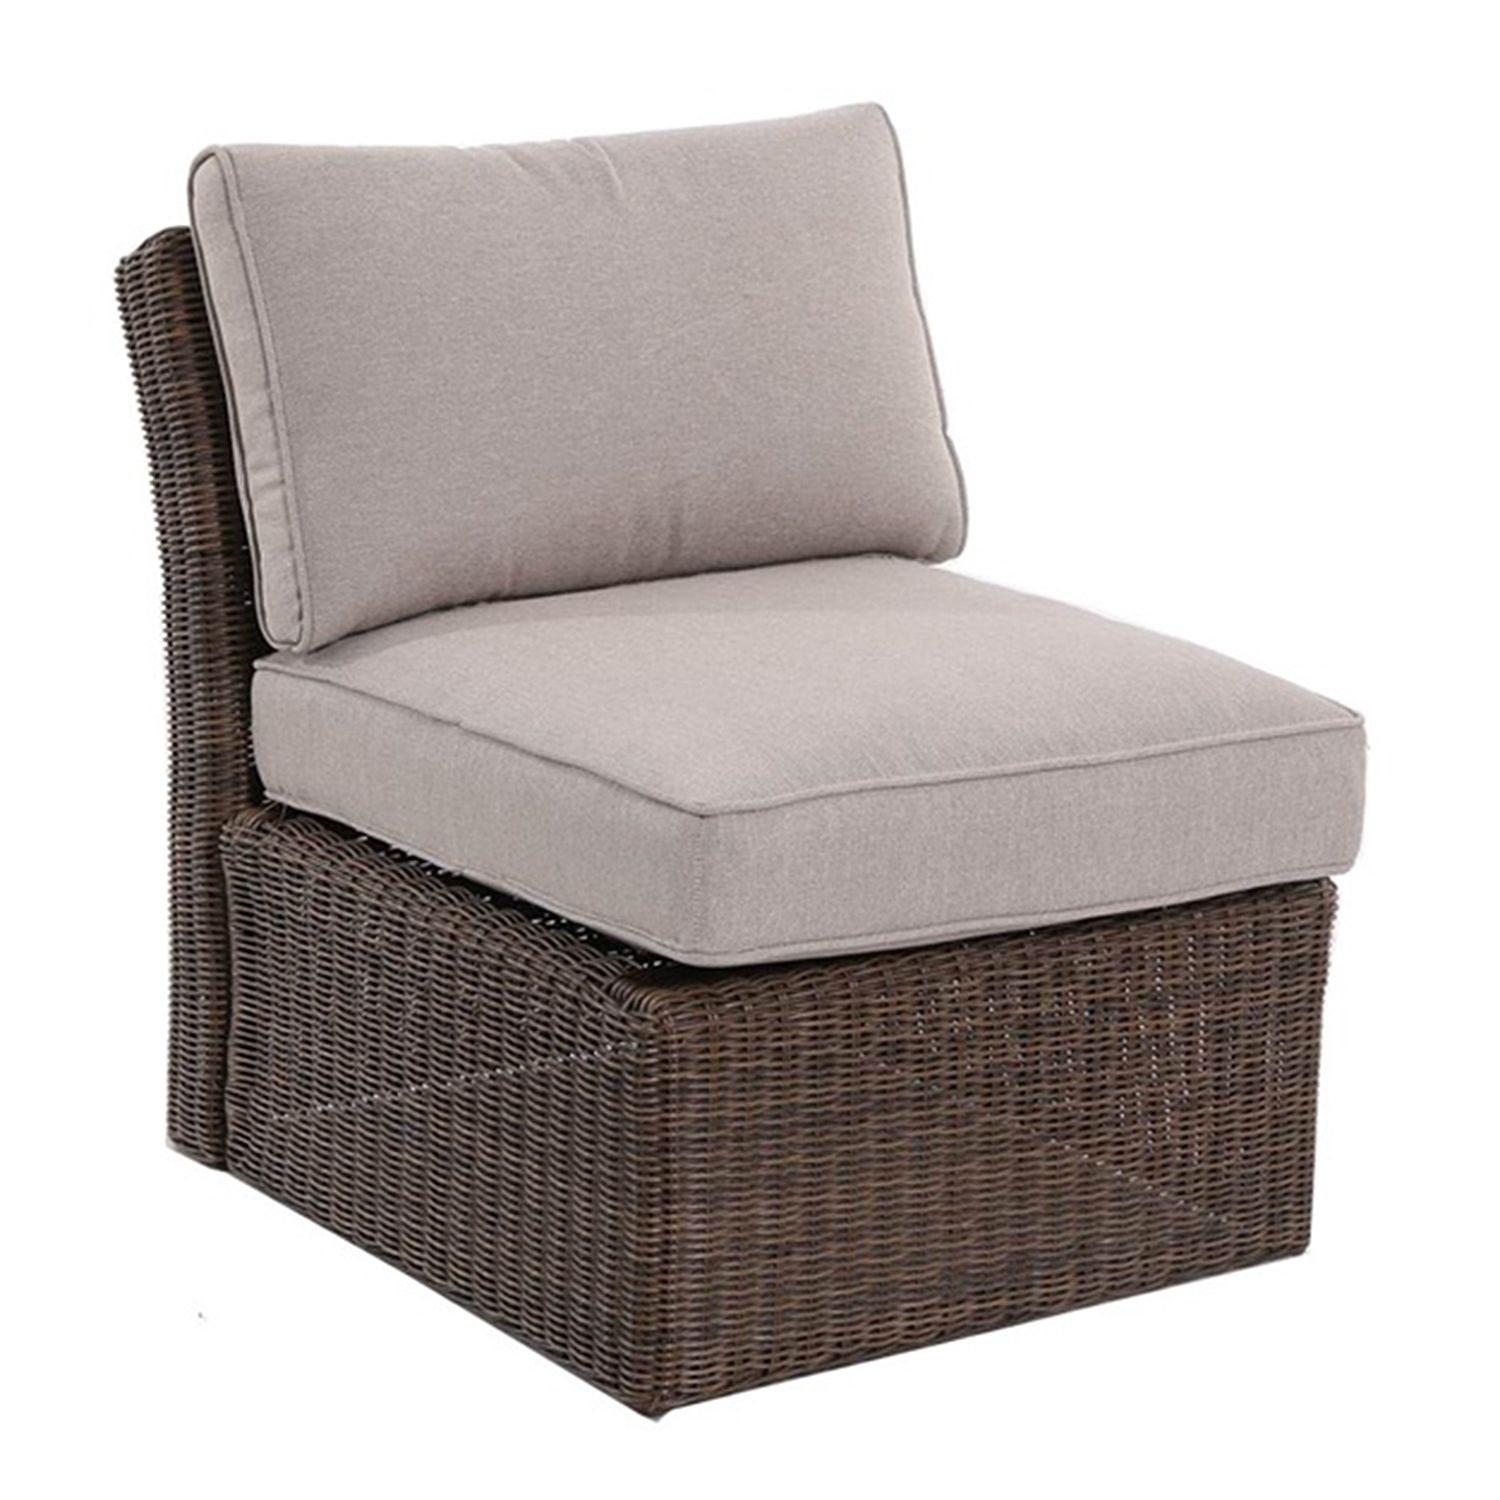 SONOMA Goods for Life™ Br&ton Armless Wicker Patio Chair  sc 1 st  Kohlu0027s : kohls patio chairs - Cheerinfomania.Com